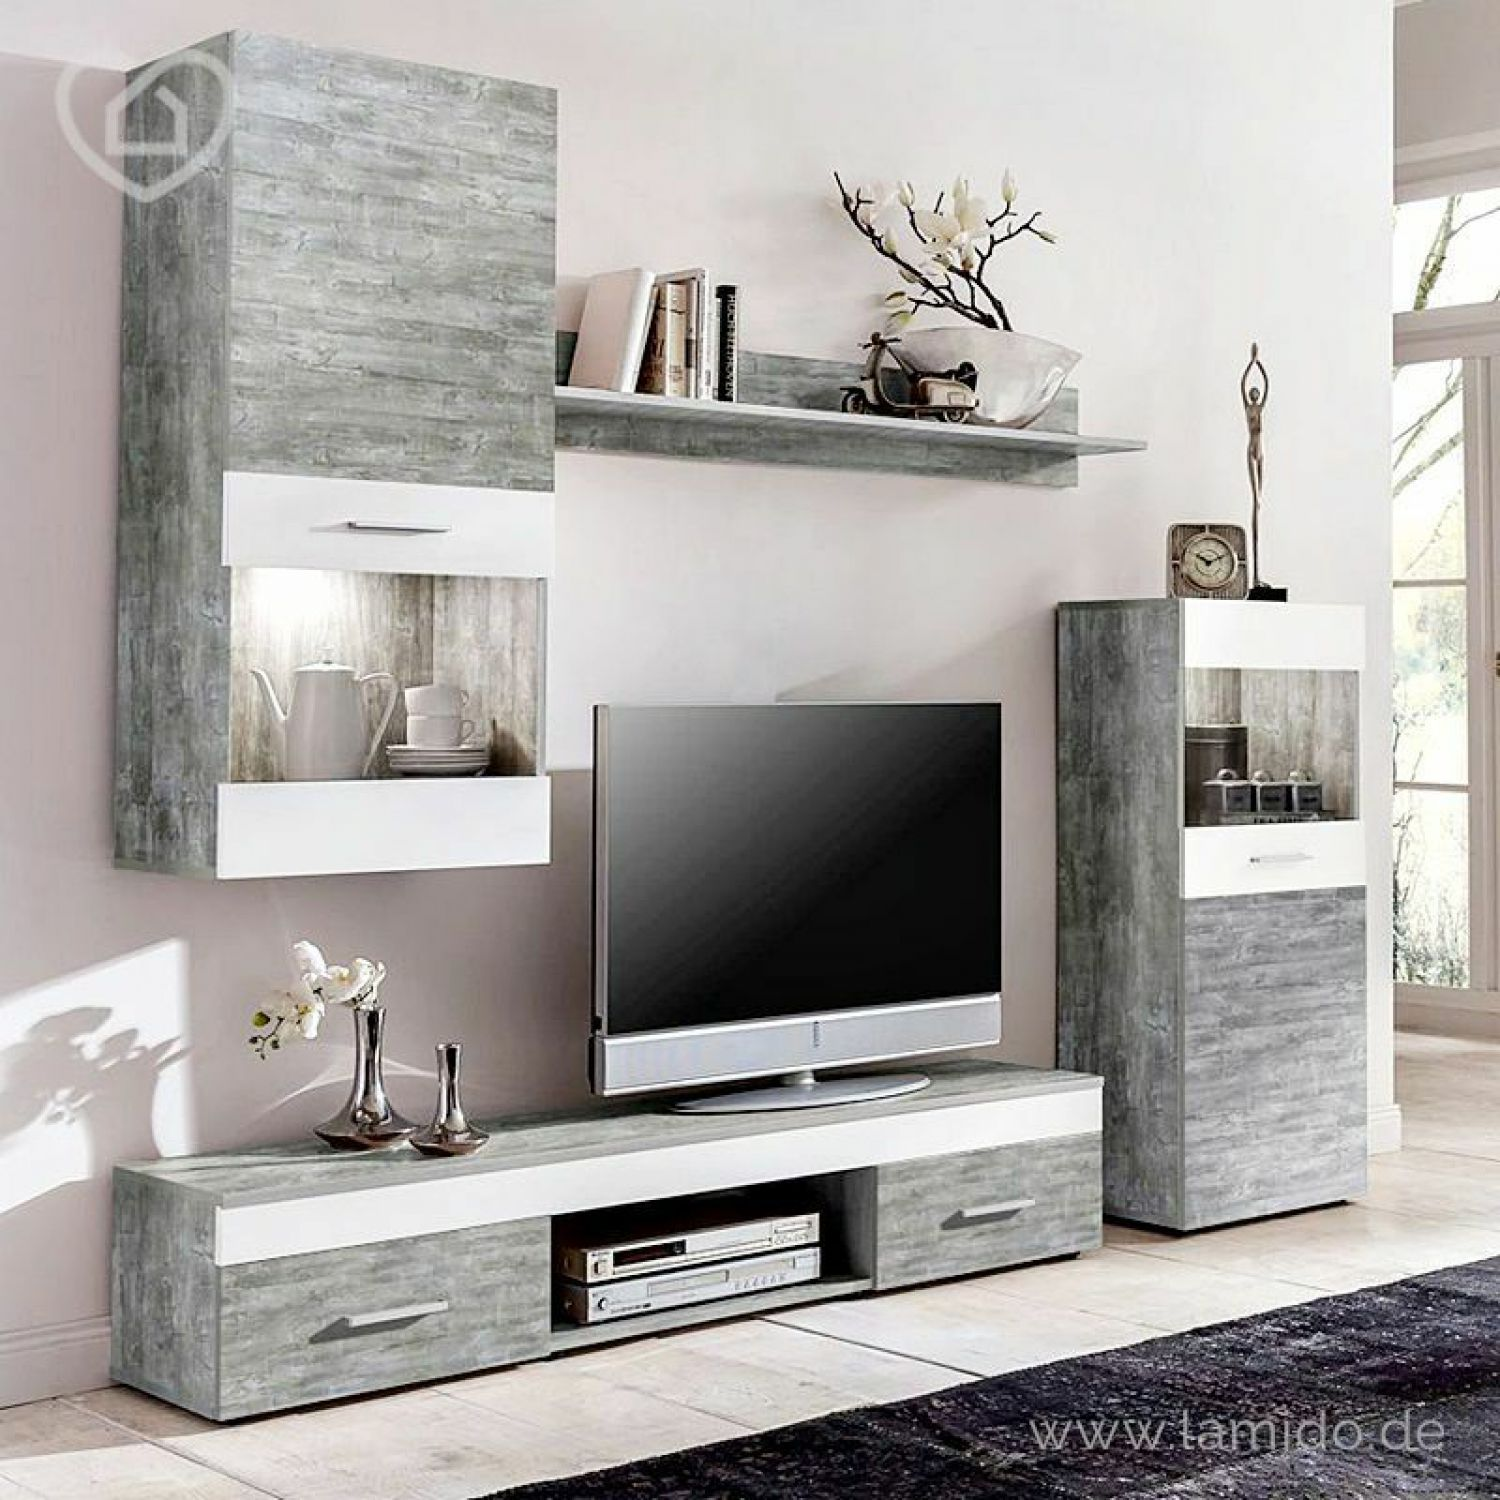 wohnwand beton wei anbauwand wohnzimmer tv fernsehschrank jugendzimmer vitrine ebay. Black Bedroom Furniture Sets. Home Design Ideas